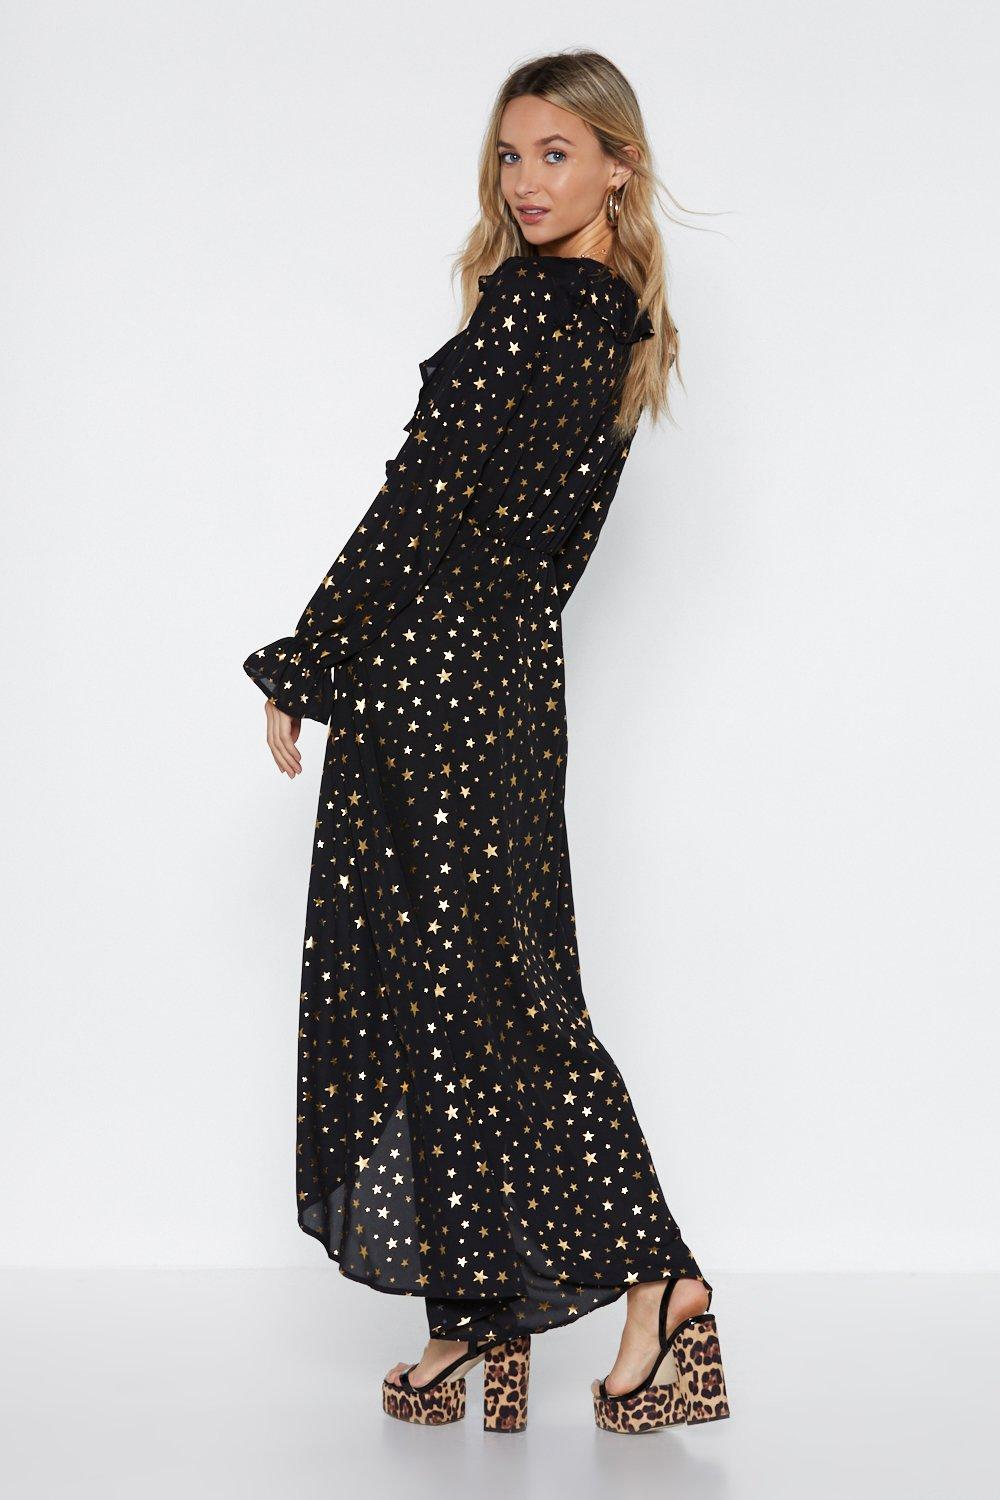 ac81ca1779e2 Distant Star Ruffle Dress. Hover to zoom